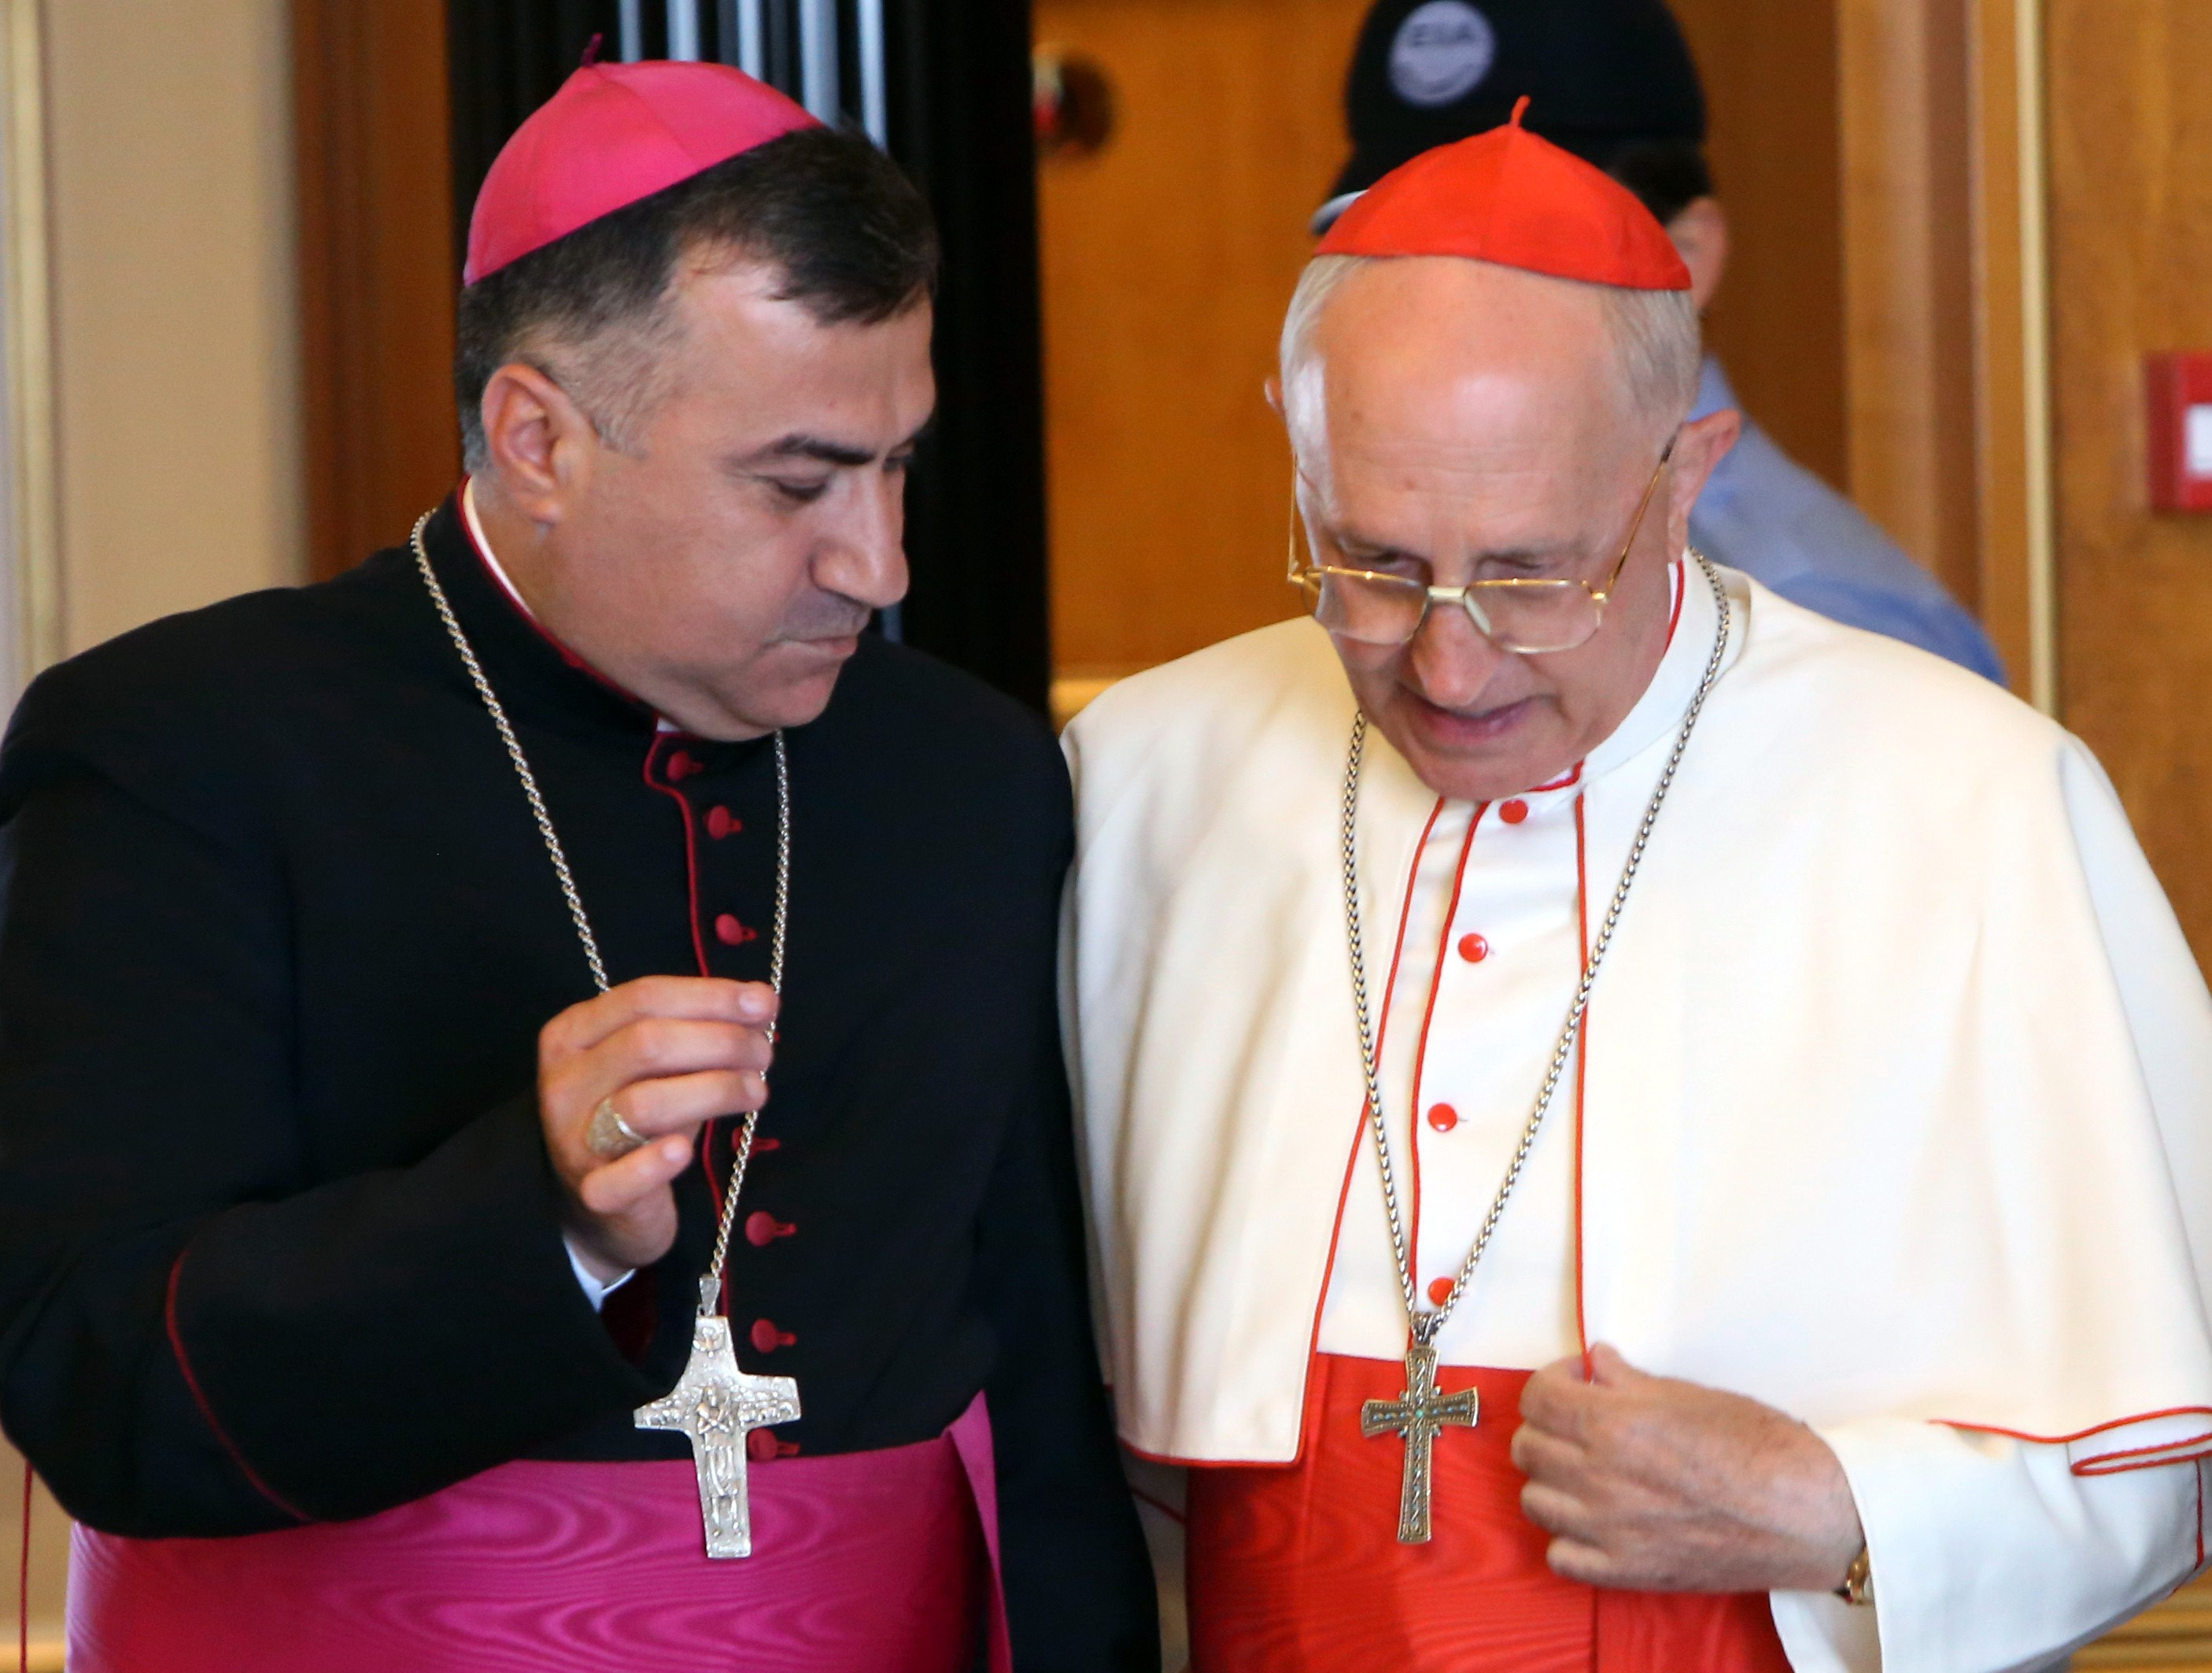 Iraqi Archbishop Bashar Warda, the Chaldean Archbishop of Arbil, (L) speaks with Pope Francis' personal envoy to Iraq Cardinal Fernando Filoni in Arbil, the capital of the autonomous Kurdish region of northern Iraq on August 13, 2014. (SAFIN HAMED/AFP via Getty Images)